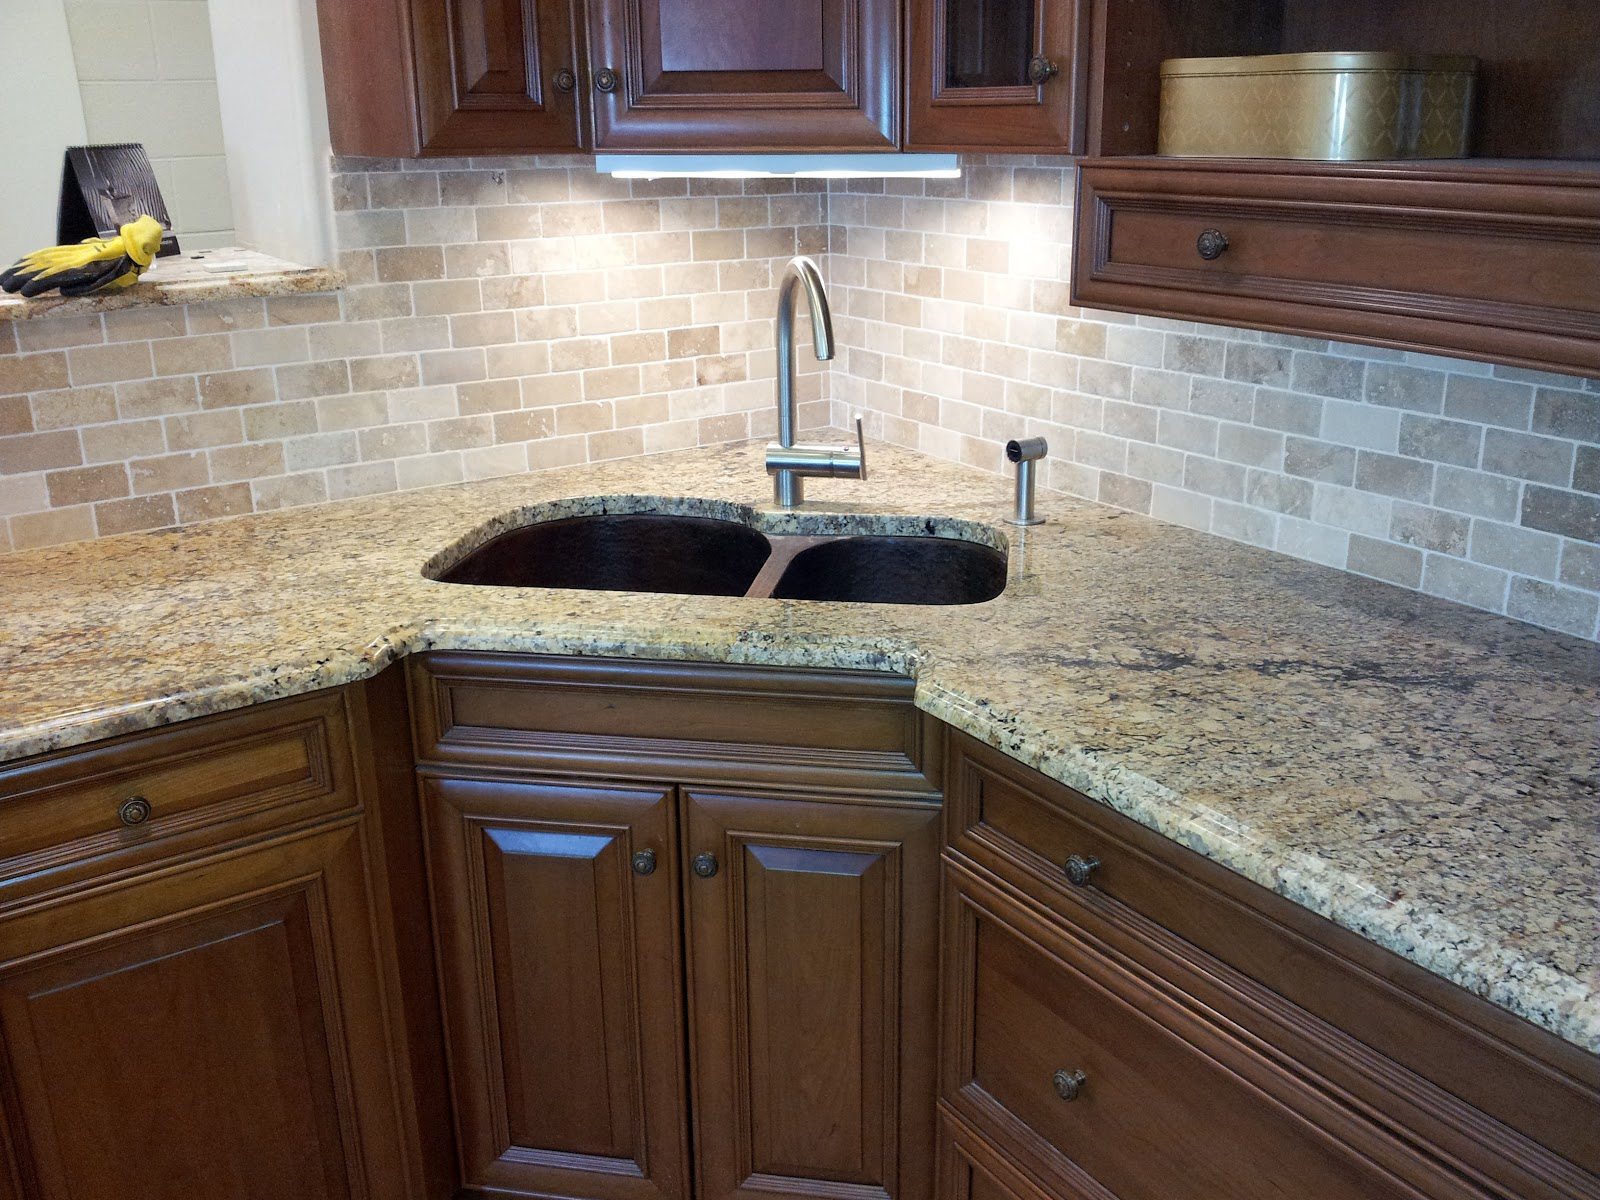 Installing Kitchen Backsplash Faucet With Handspray Floor Installation Photos Tile And Granite In Trenton Nj